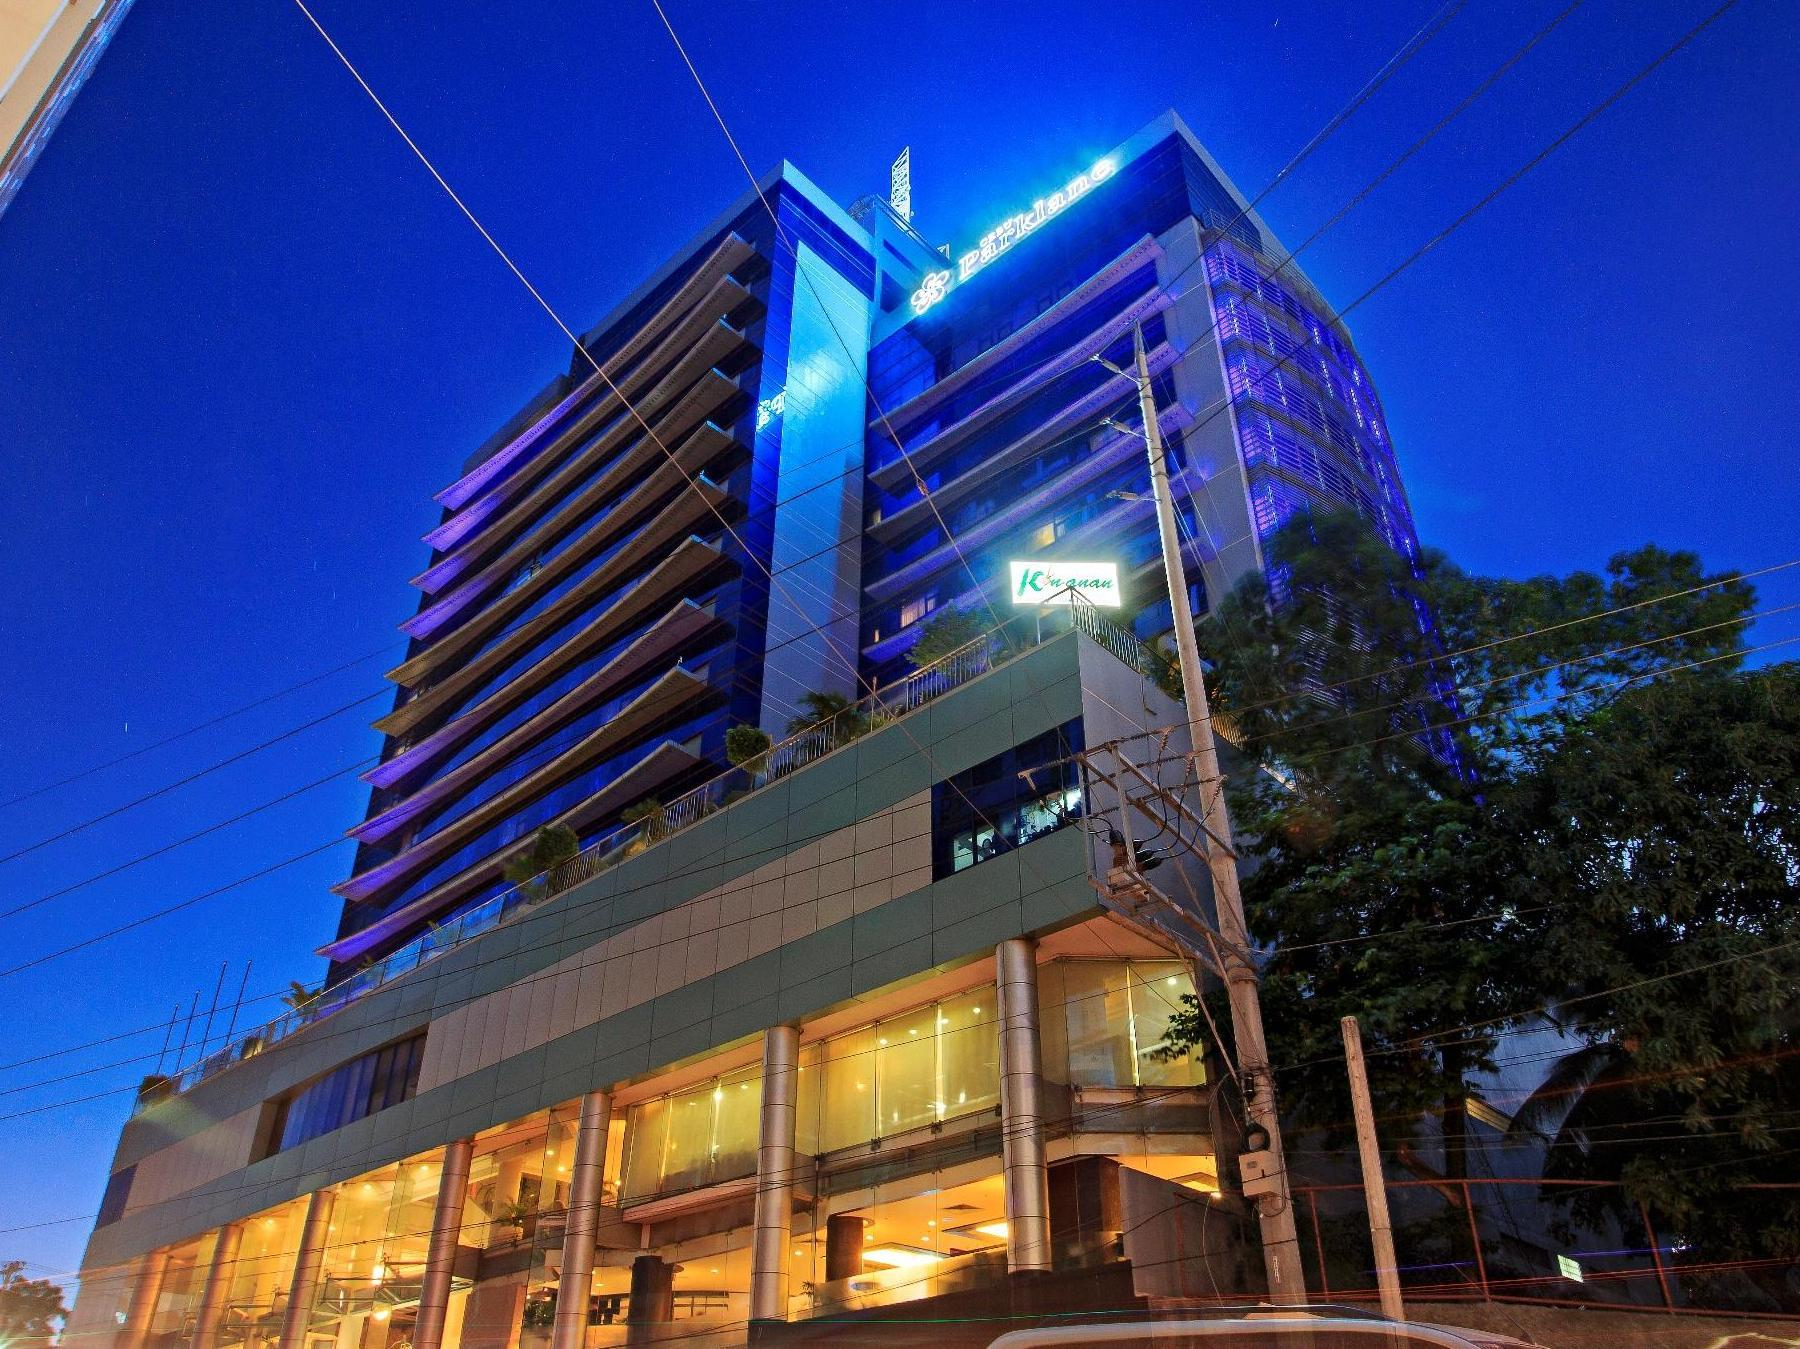 Cebu Parklane International Hotel Cebu-stad - Hotel exterieur